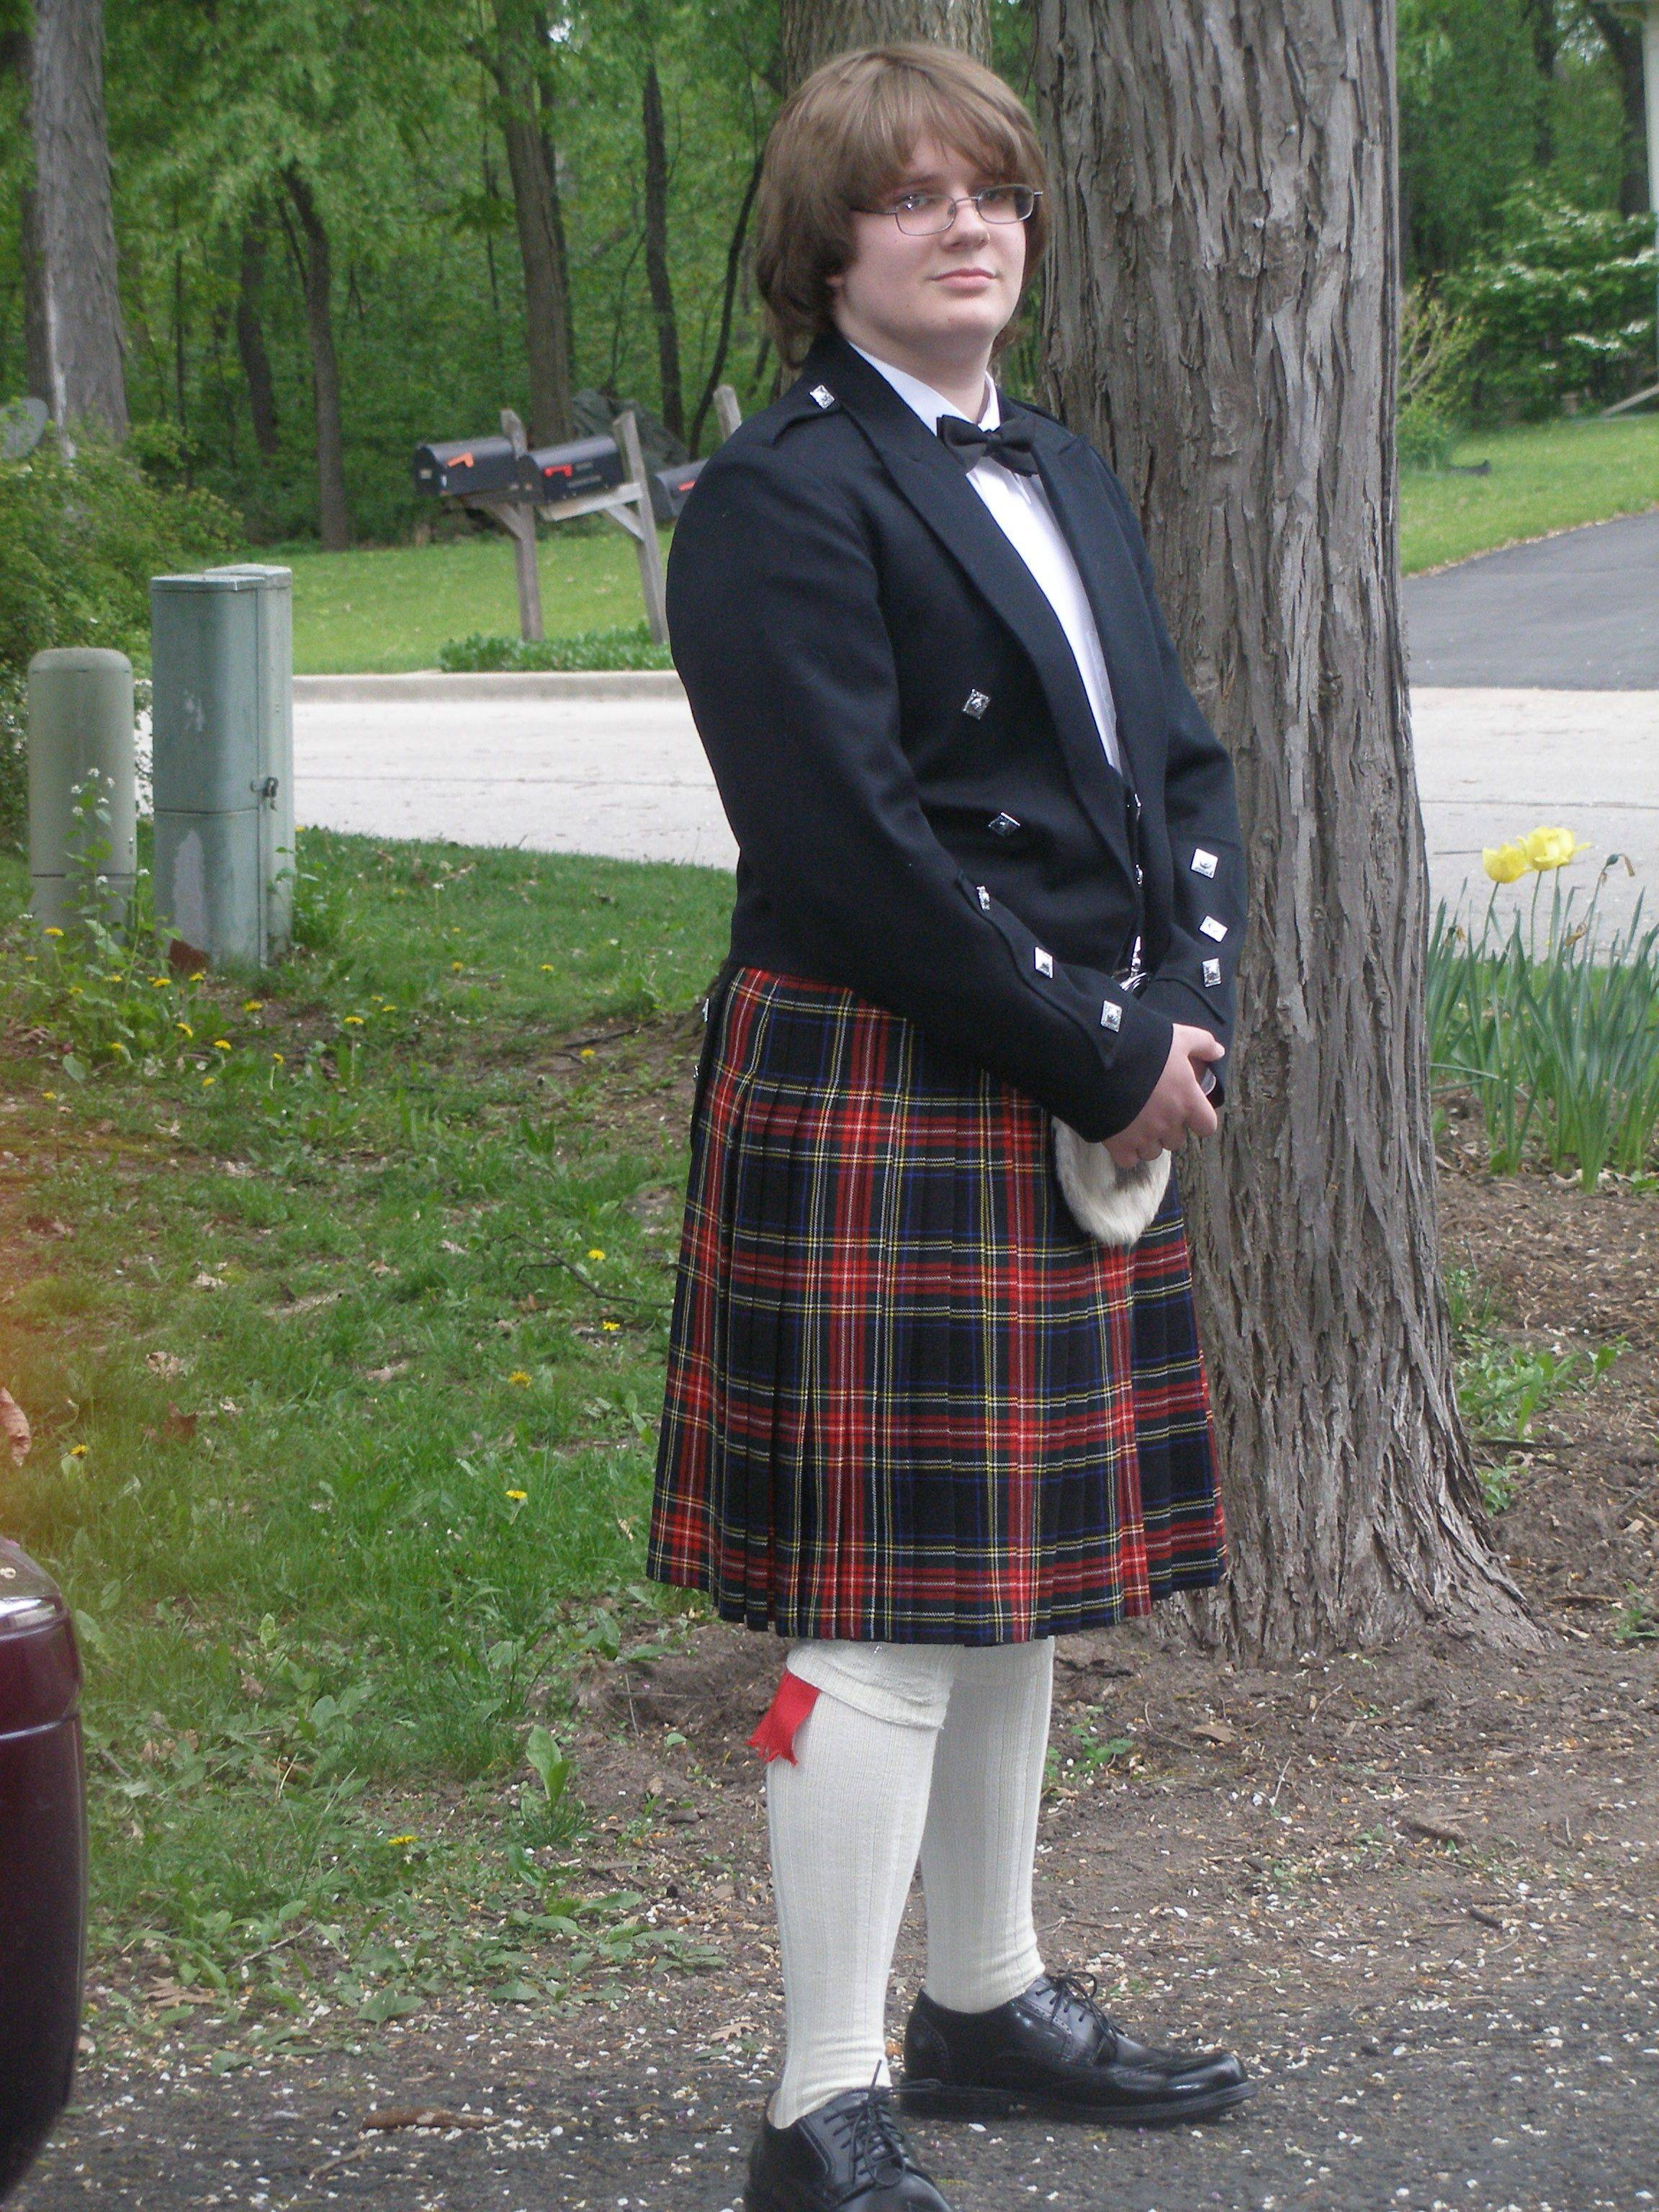 Cameron Swinney plans to wear a kilt again this year to prom at West Chicago's Community High School, but he's disappointed that tickets for a post-prom cruise sold out.